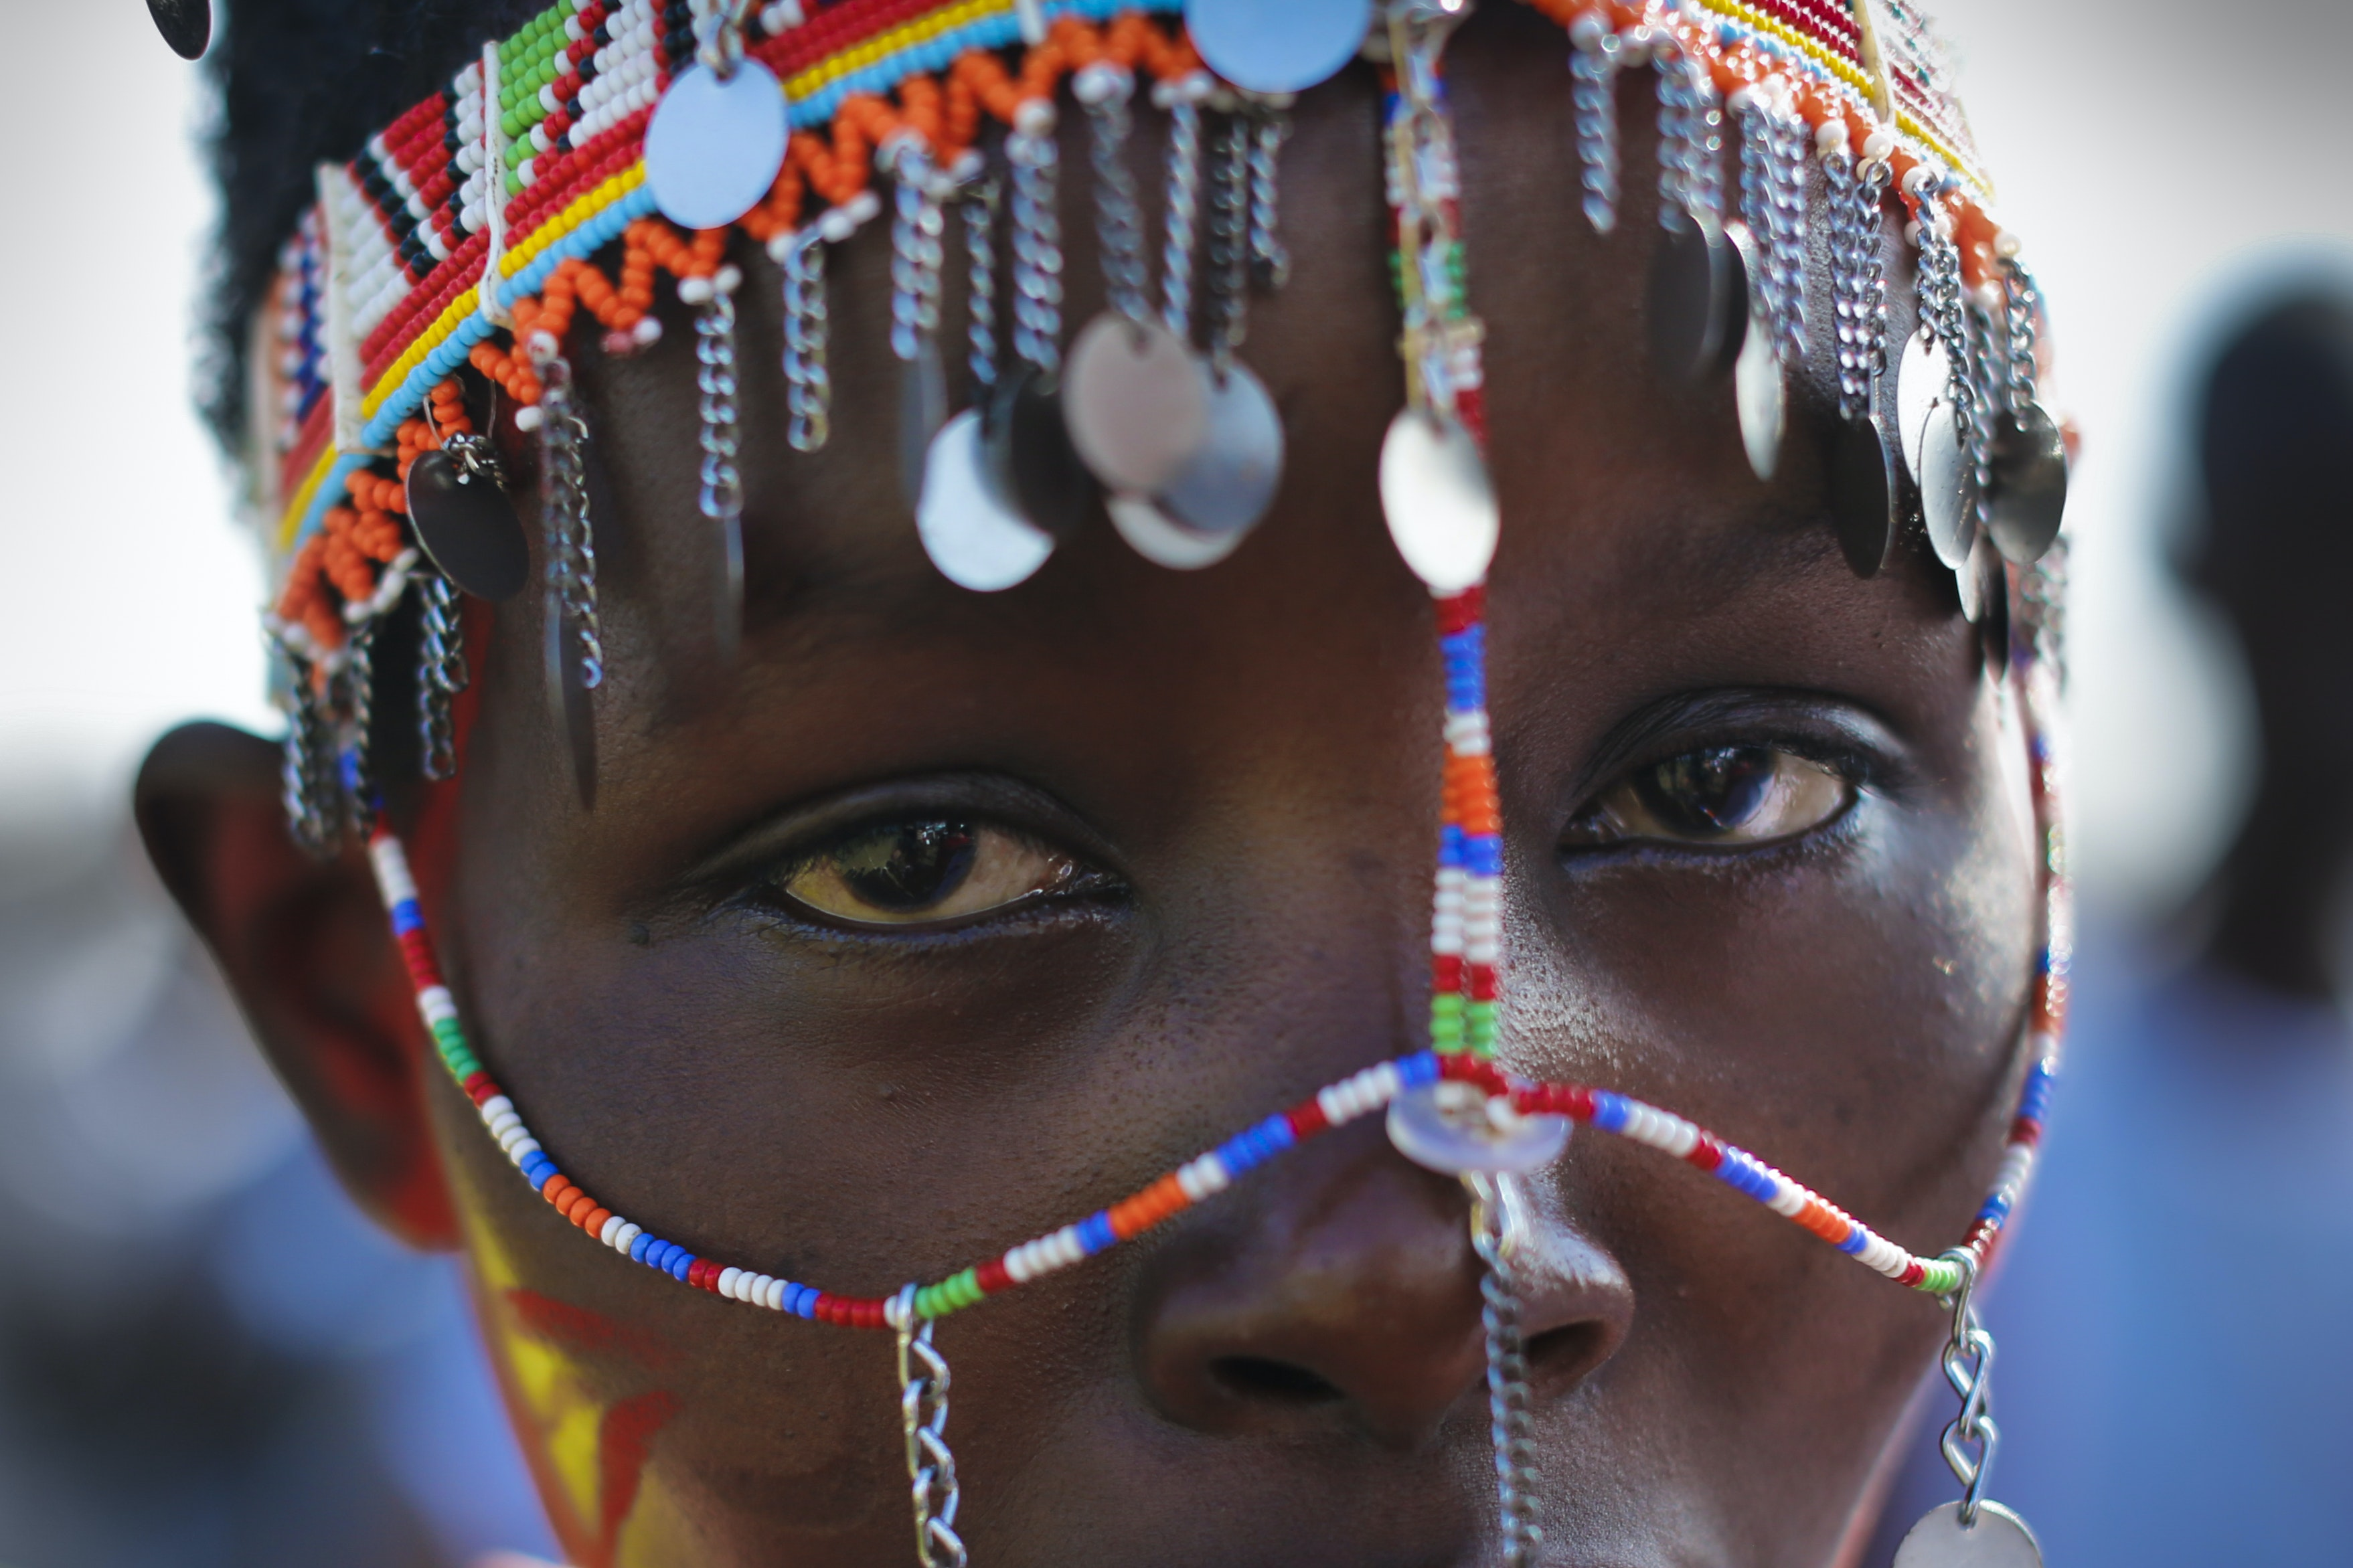 file 20180413 560 1clyja3.jpg?ixlib=rb 1.1 - How practices, and meaning, of genital cutting are changing in Tanzania